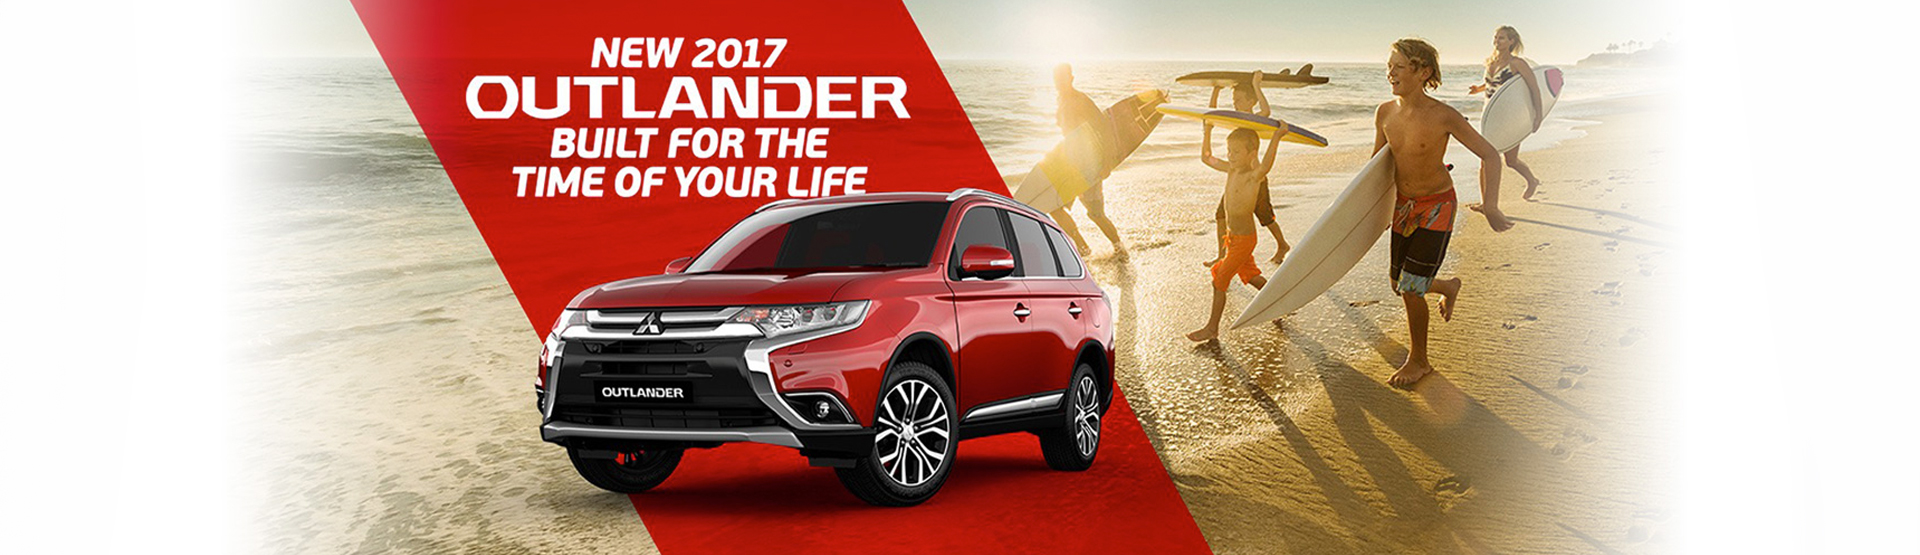 New 2017 Mitsubishi Outlander, built for the time of your life. Available at Nundah Mitsubishi, Brisbane.